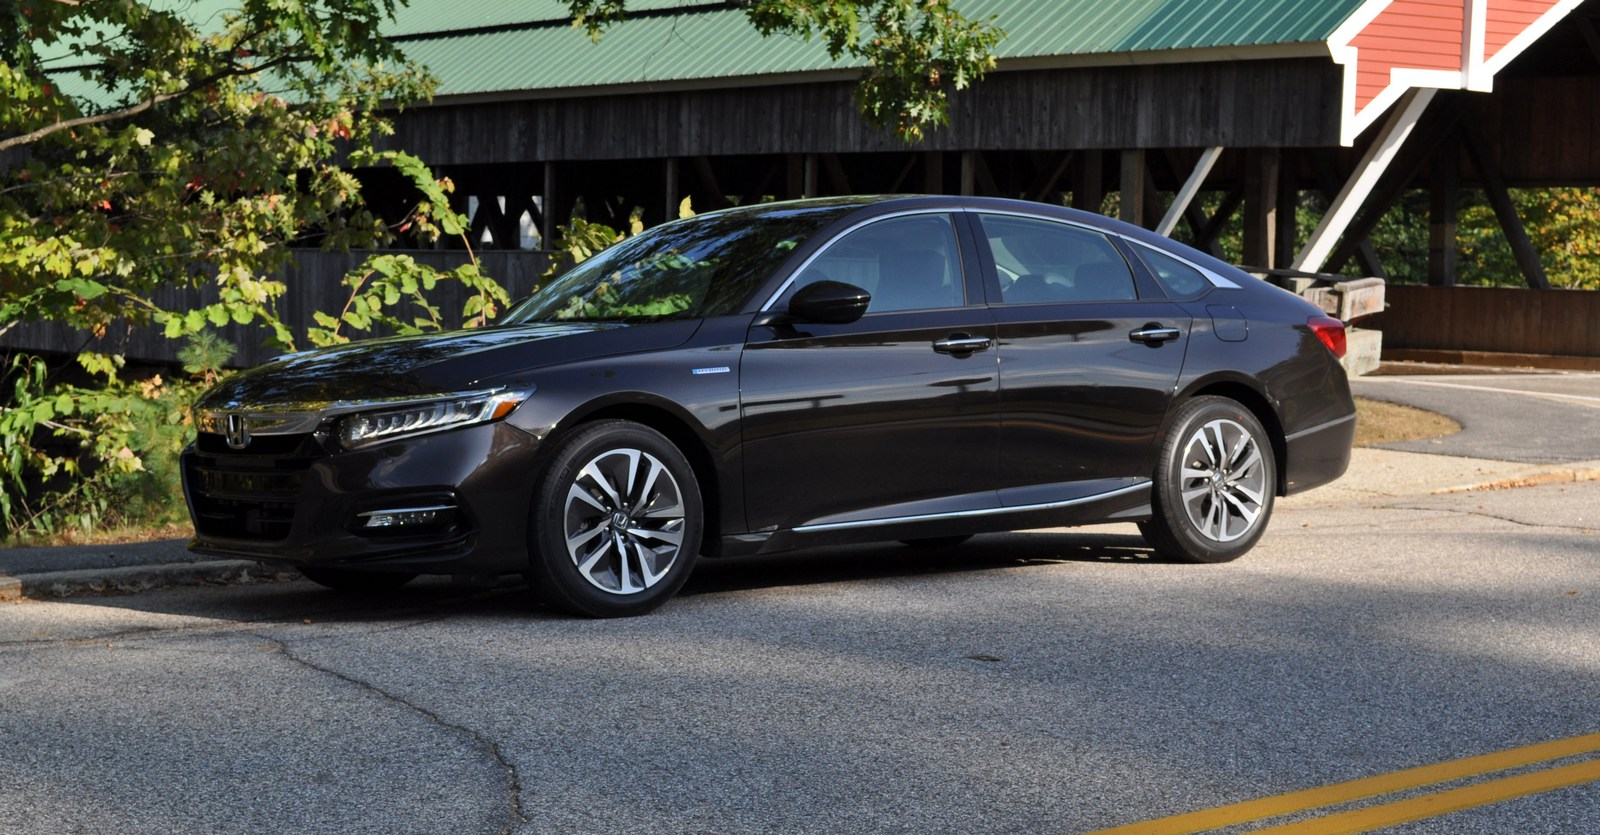 2018 Honda Accord Hybrid >> First Drive: 2018 Honda Accord Hybrid Is A No Compromise Green Machine | Carscoops